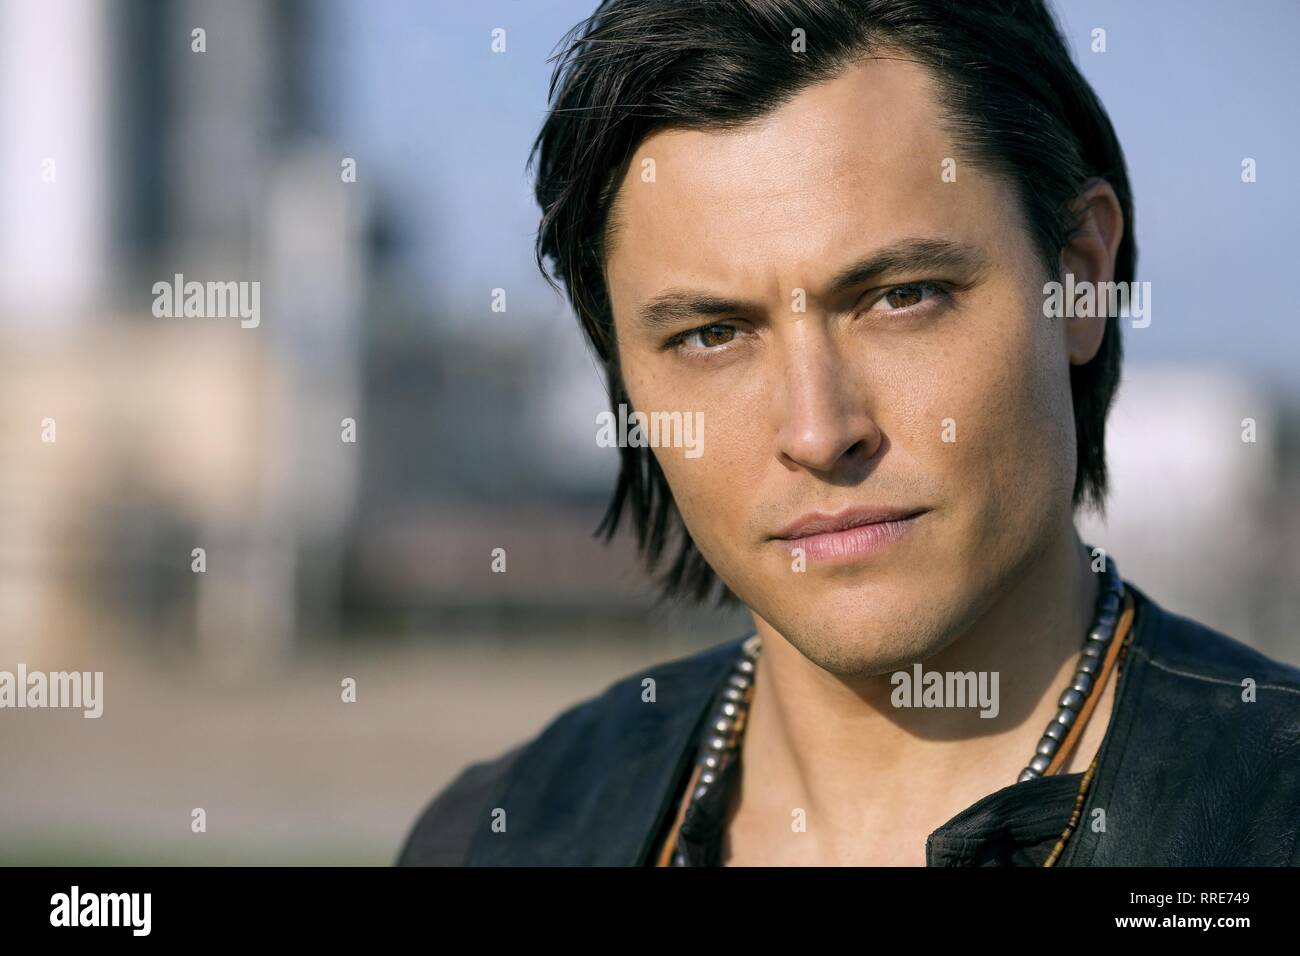 THE GIFTED, BLAIR REDFORD, 2017 - Stock Image